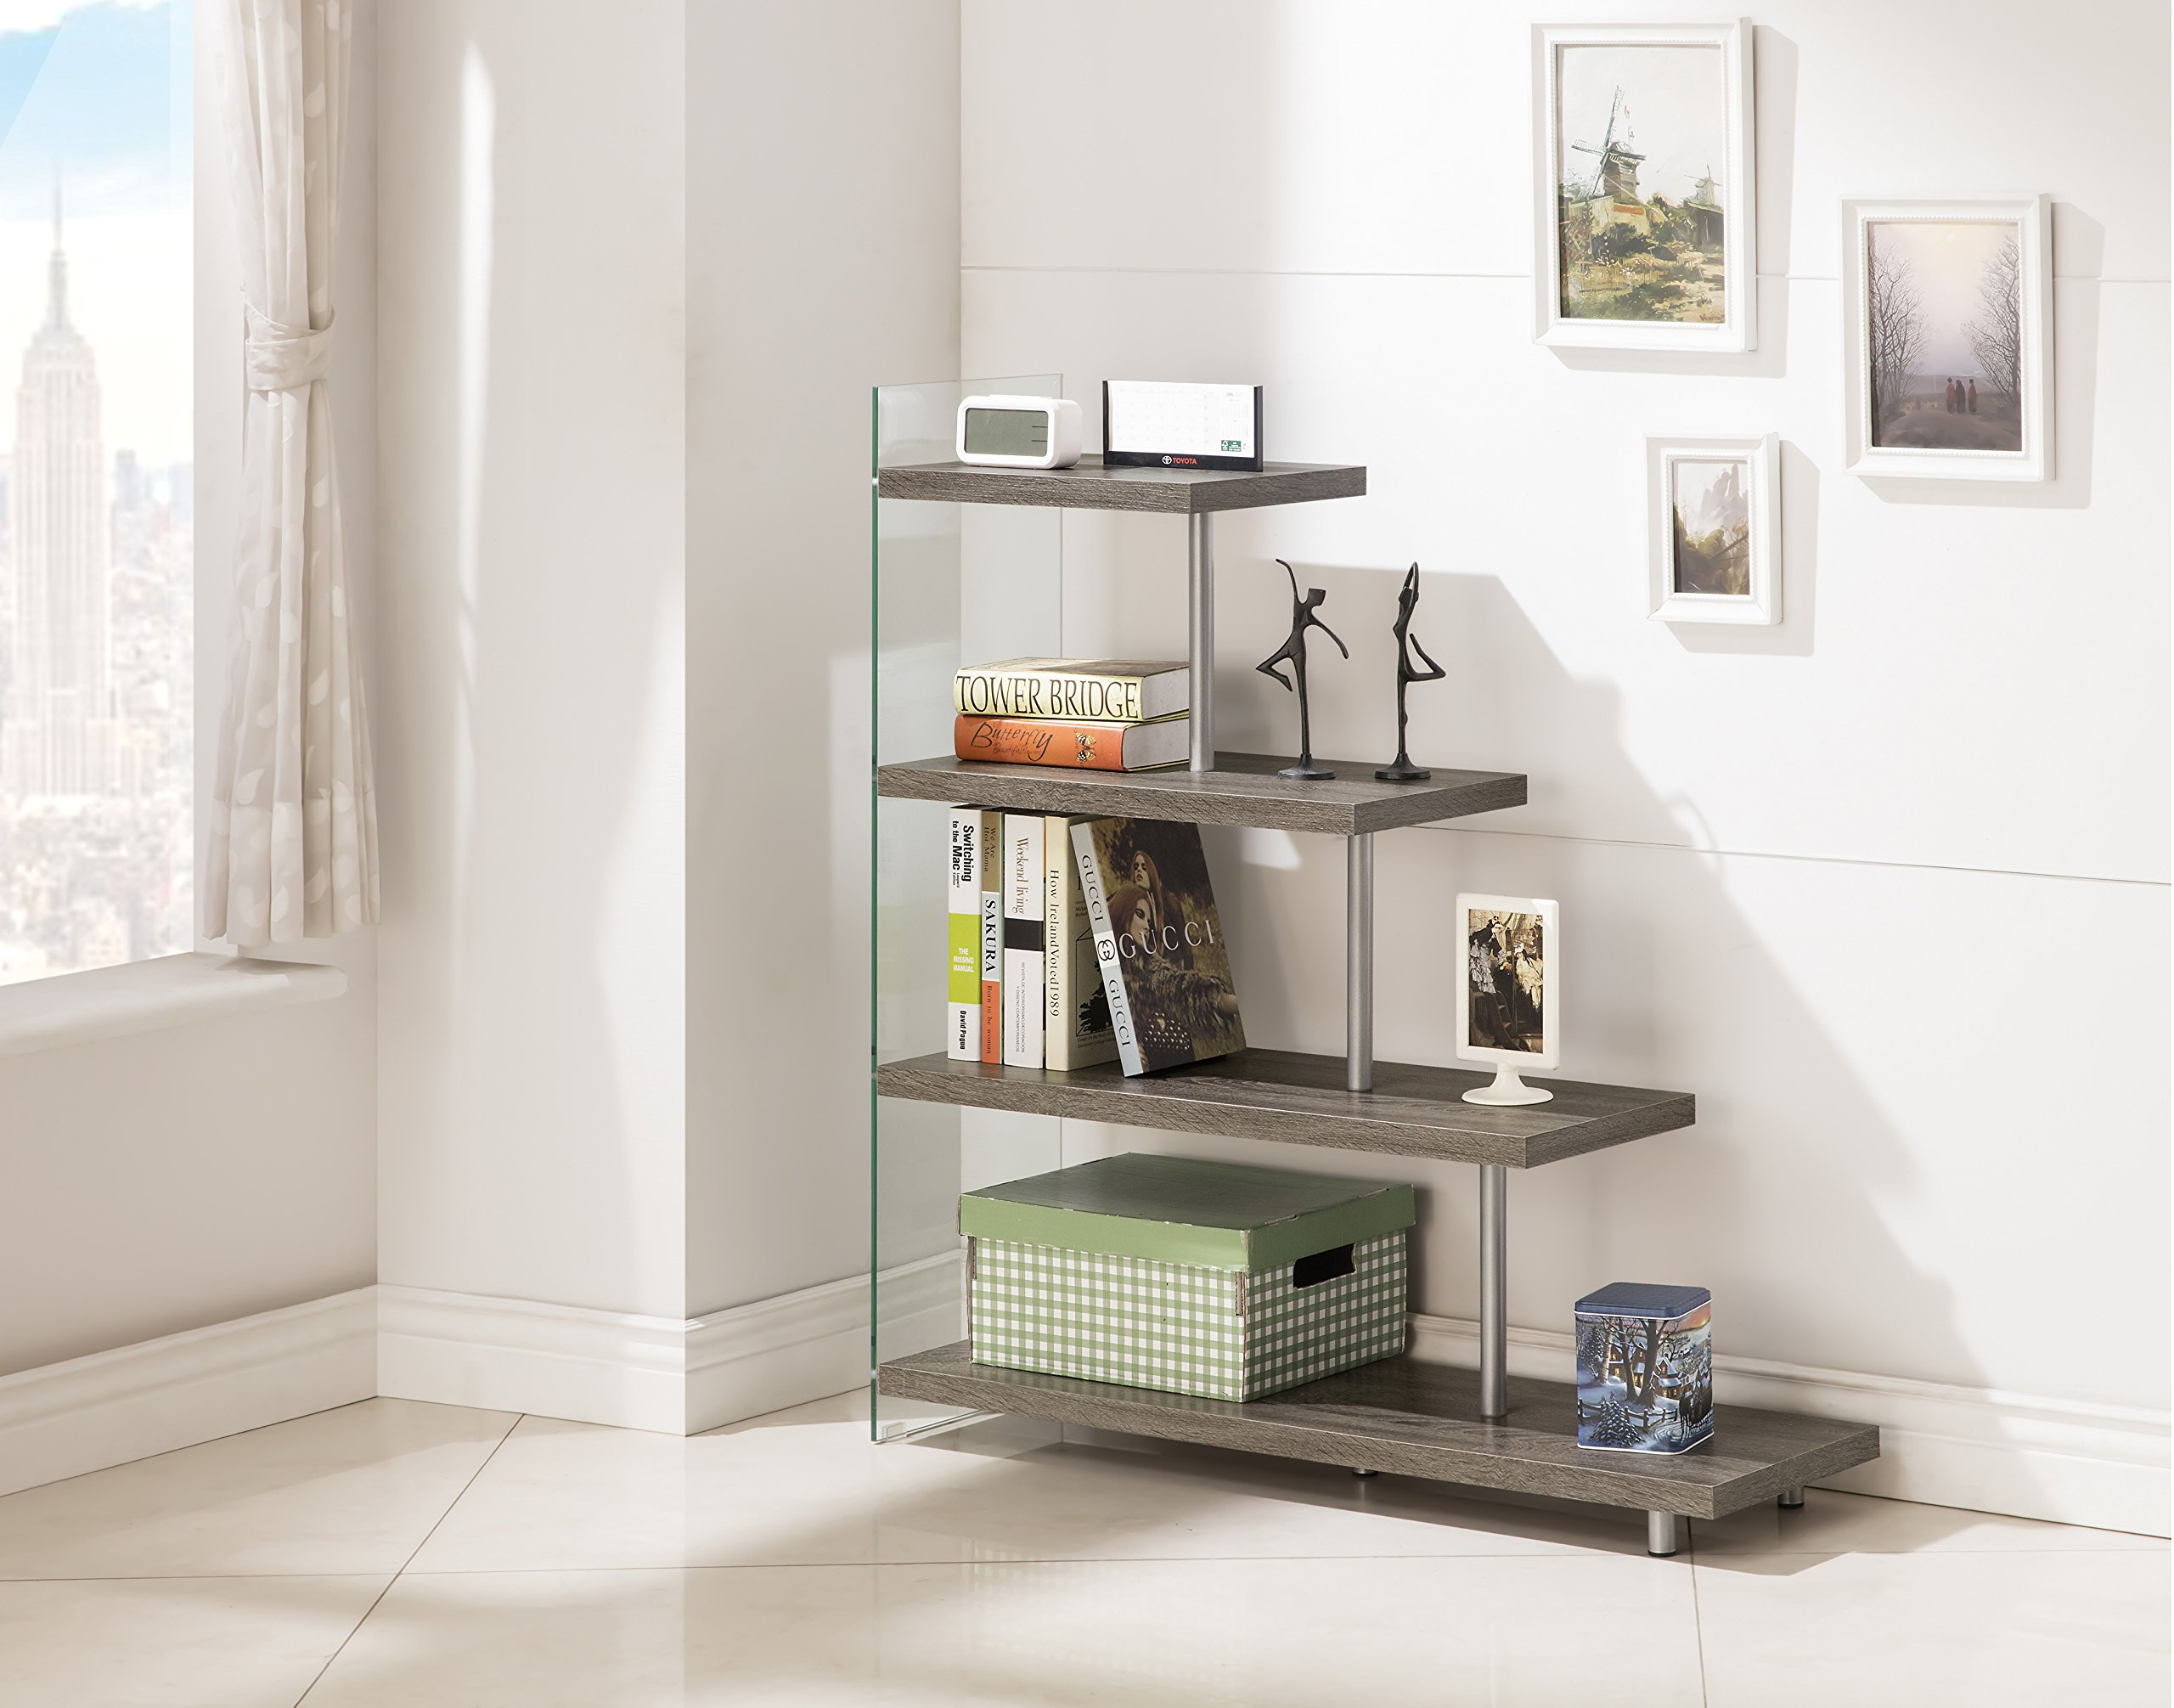 bookshelf room furniture support beadboard wooden magnificent marble white chrome ideas cabinet divider bookcase metal knob glossy storage brown floor interior with in dividers round wall design turqouise square thick based small and